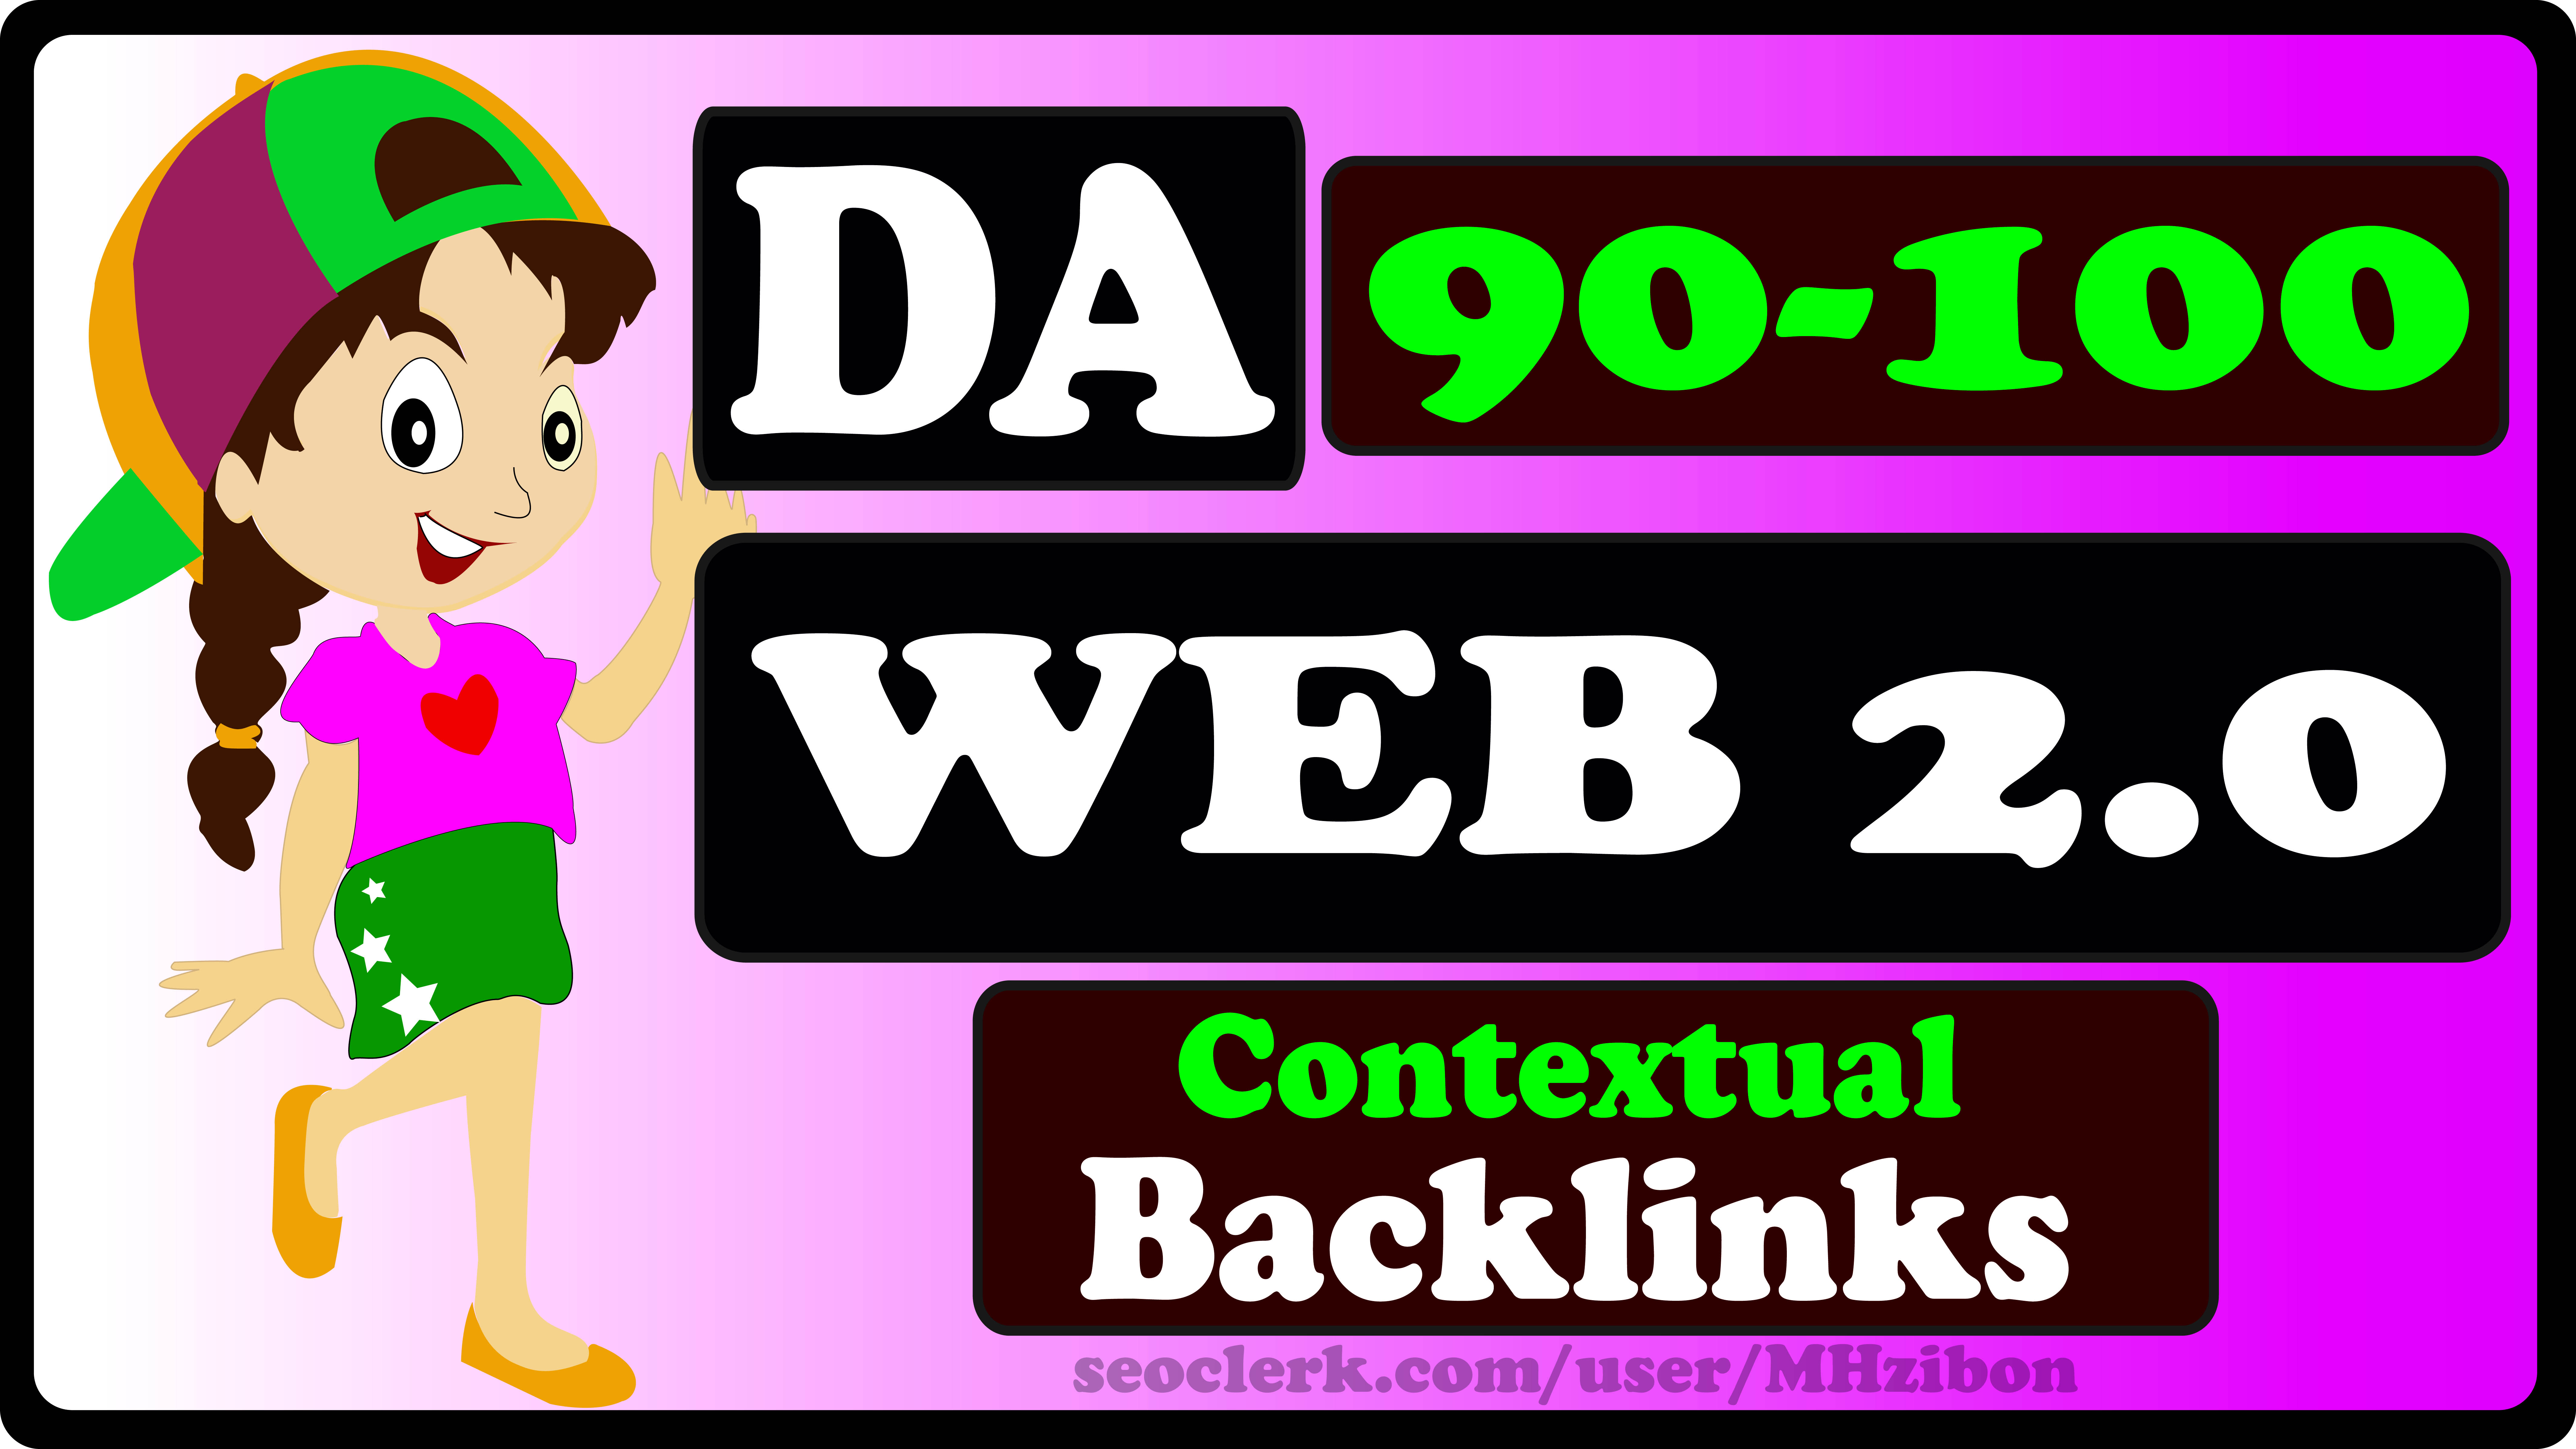 20 Web 2.0 - DA90+ Contextual Backlinks